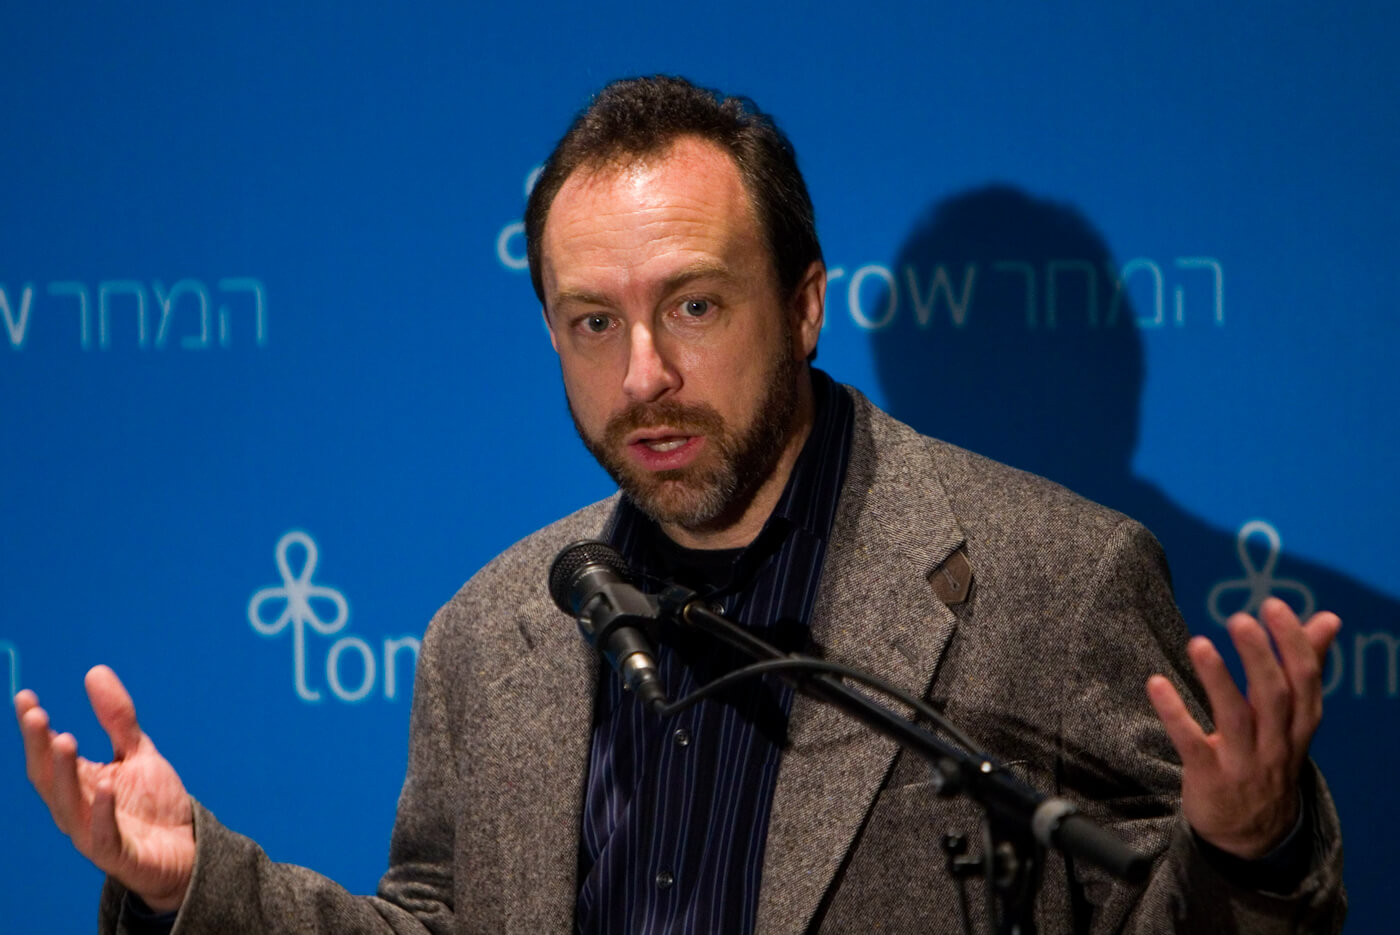 jimmy wales facing tomorrow conference israel 2009 AP photo 09102109924 1